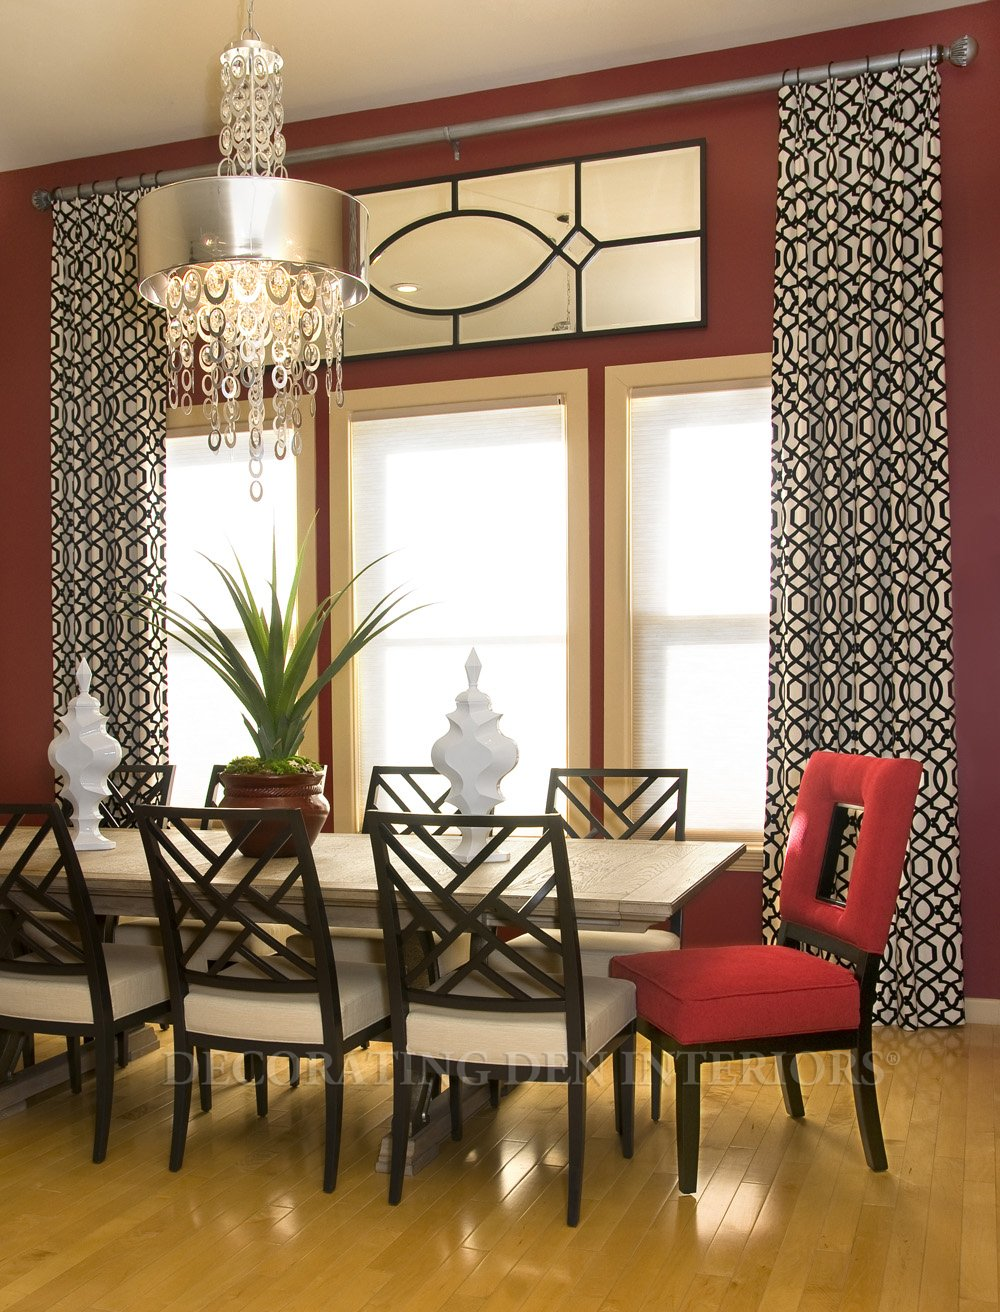 How tall should my window treatments be christine Contemporary drapes window treatments